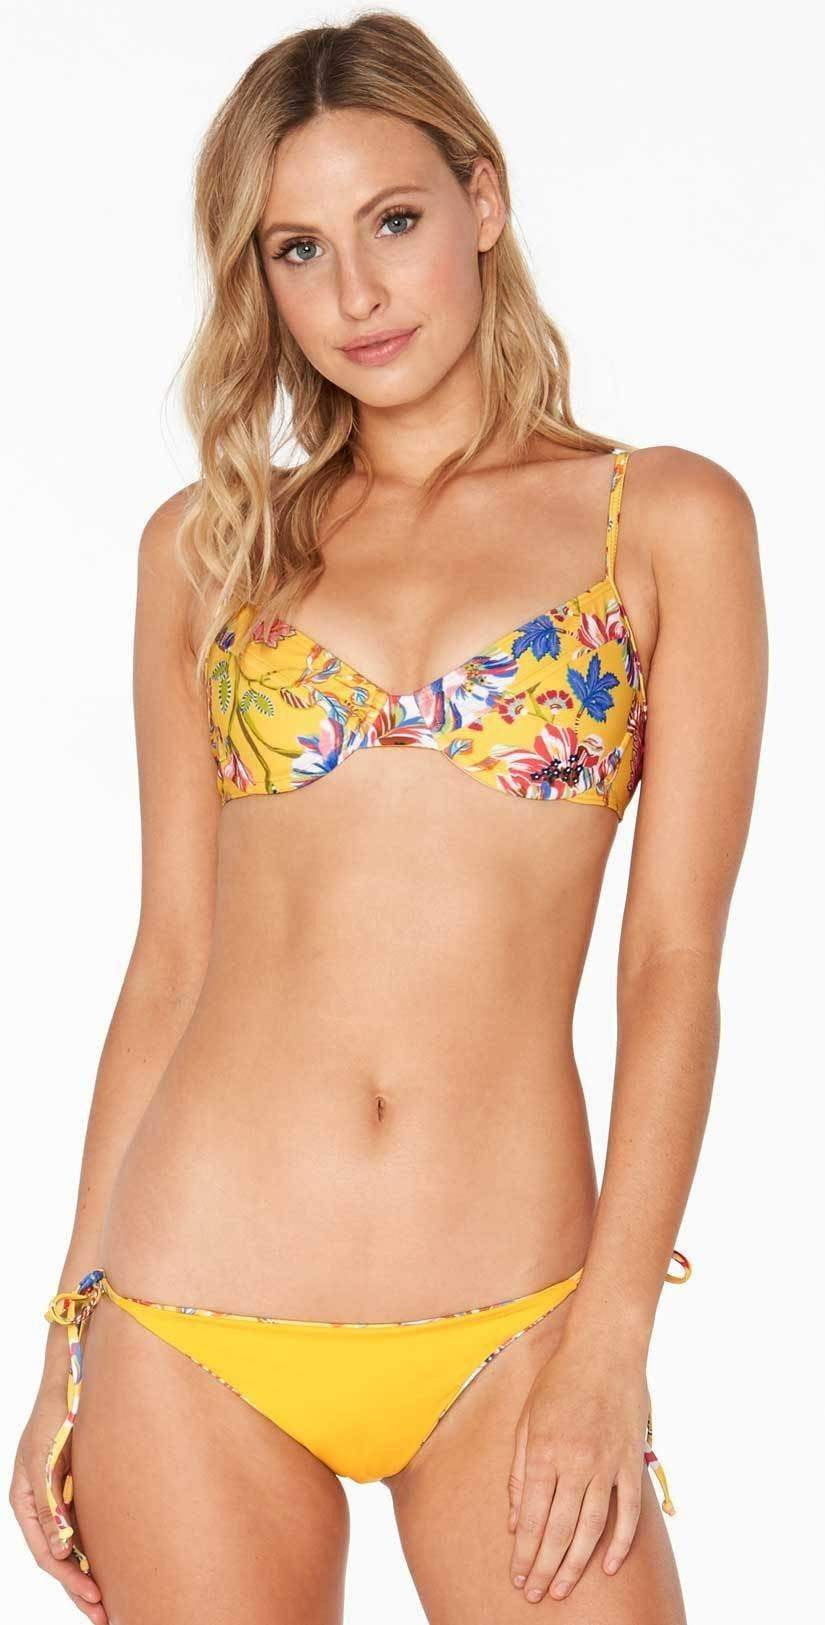 L Space Missy Pacific Bloom Top in Sunshine Gold PBMIT18-SUG: